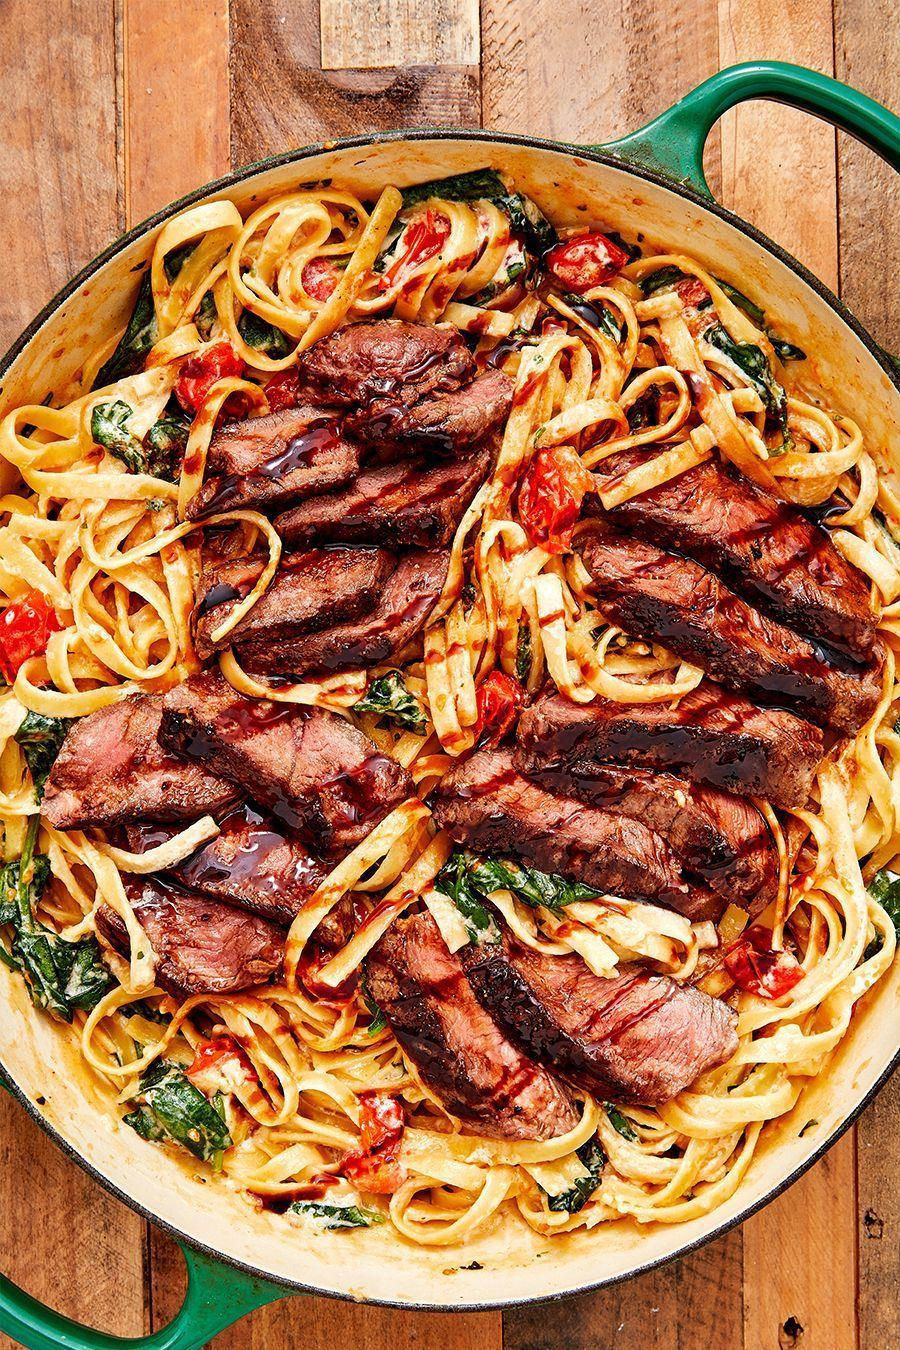 """<p>Whenever we crave <a href=""""https://www.delish.com/uk/food-news/a28961080/how-to-cook-steak/"""" rel=""""nofollow noopener"""" target=""""_blank"""" data-ylk=""""slk:steak"""" class=""""link rapid-noclick-resp"""">steak</a> this dish is always what we want to make. It comes together quickly and is so full of flavour. It makes us forget chicken ever existed. </p><p>Get the <a href=""""https://www.delish.com/uk/cooking/recipes/a30311517/creamy-steak-fettuccine-recipe/"""" rel=""""nofollow noopener"""" target=""""_blank"""" data-ylk=""""slk:Creamy Steak Fettuccine"""" class=""""link rapid-noclick-resp"""">Creamy Steak Fettuccine</a> recipe.</p>"""